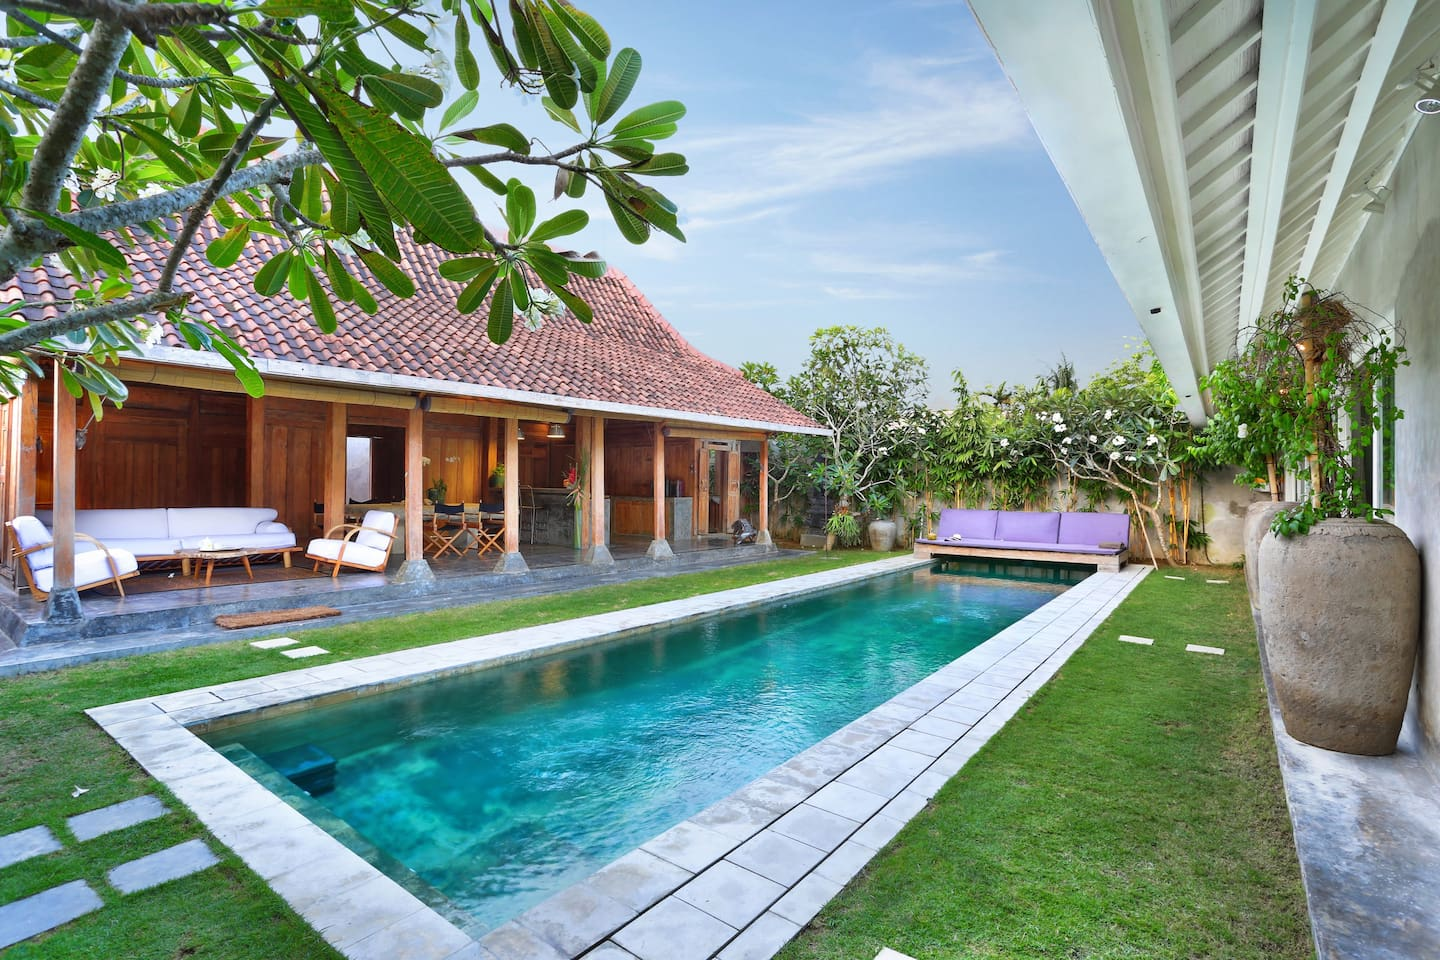 The limasan for the outdoor balinese lifestyle